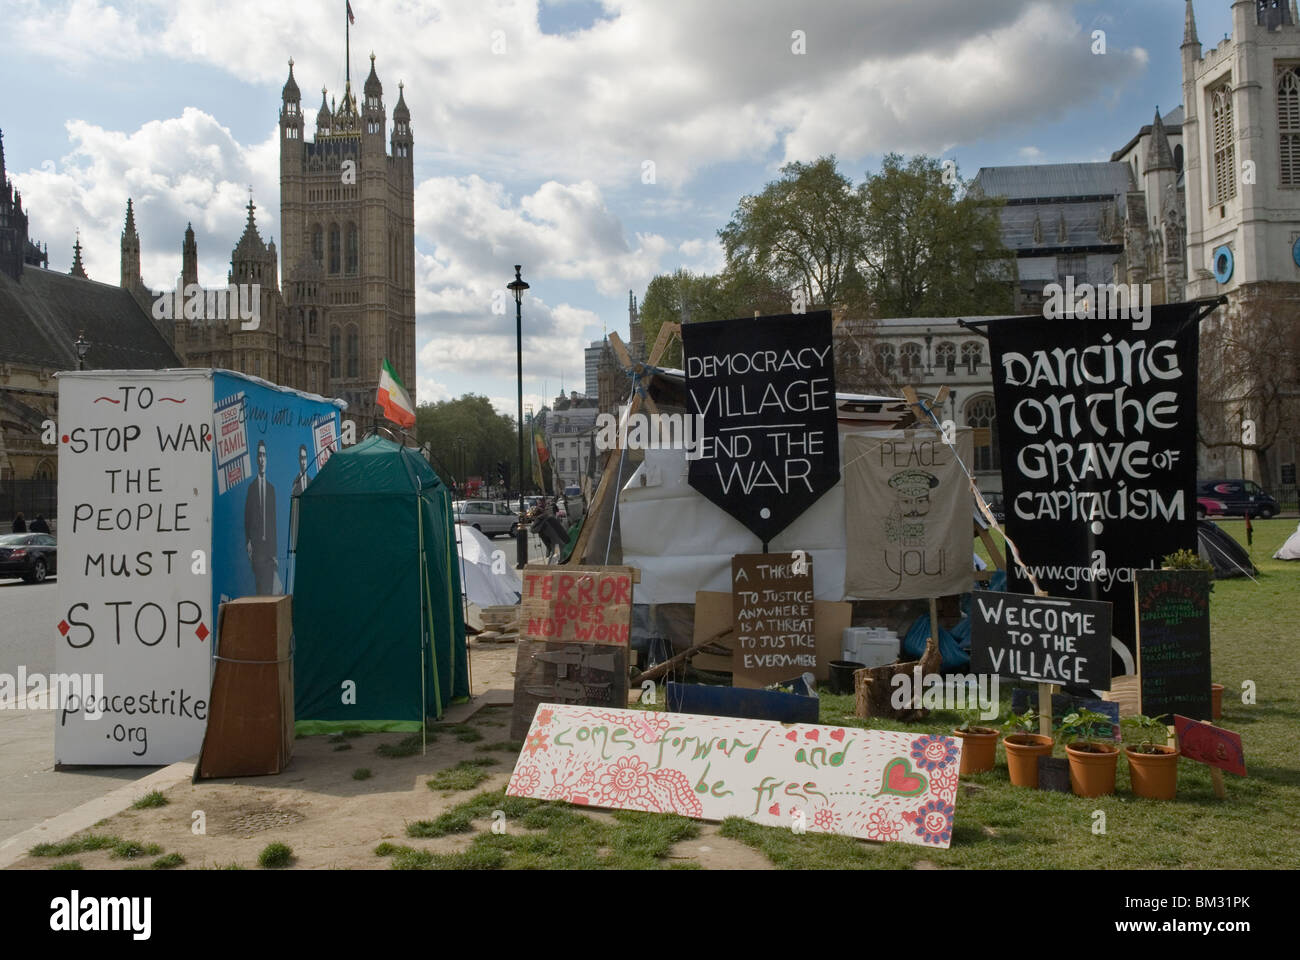 Democracy Village Parliament Square London Uk 2010s HOMER SYKES - Stock Image